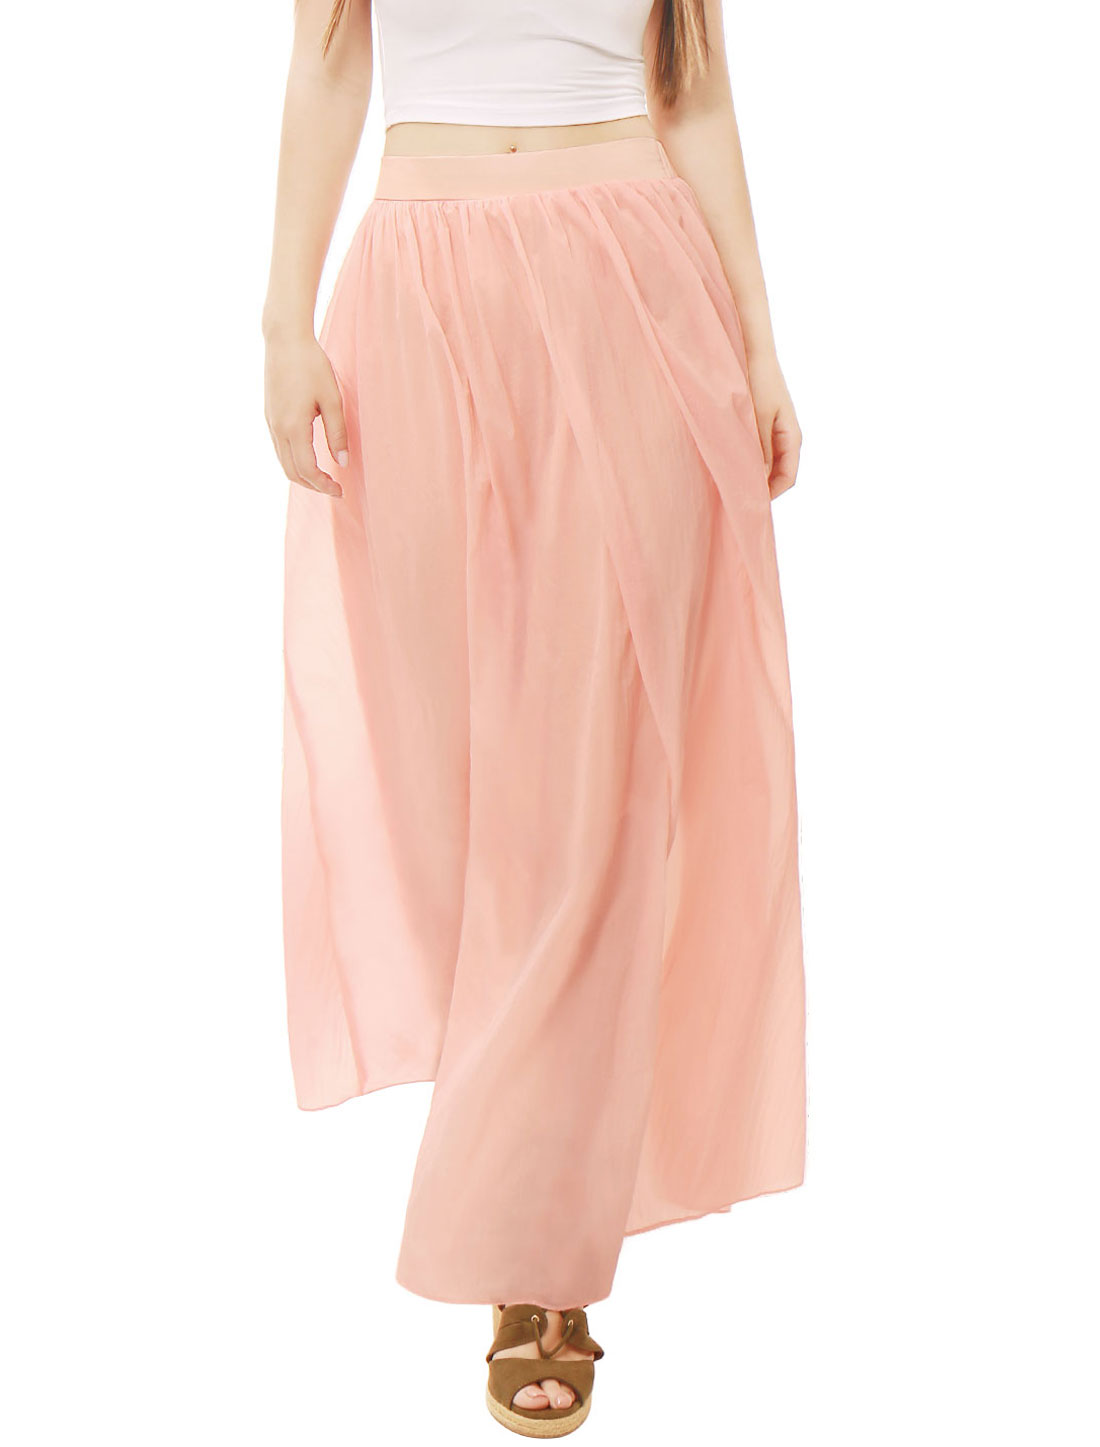 popular flowy skirts buy cheap flowy skirts lots from